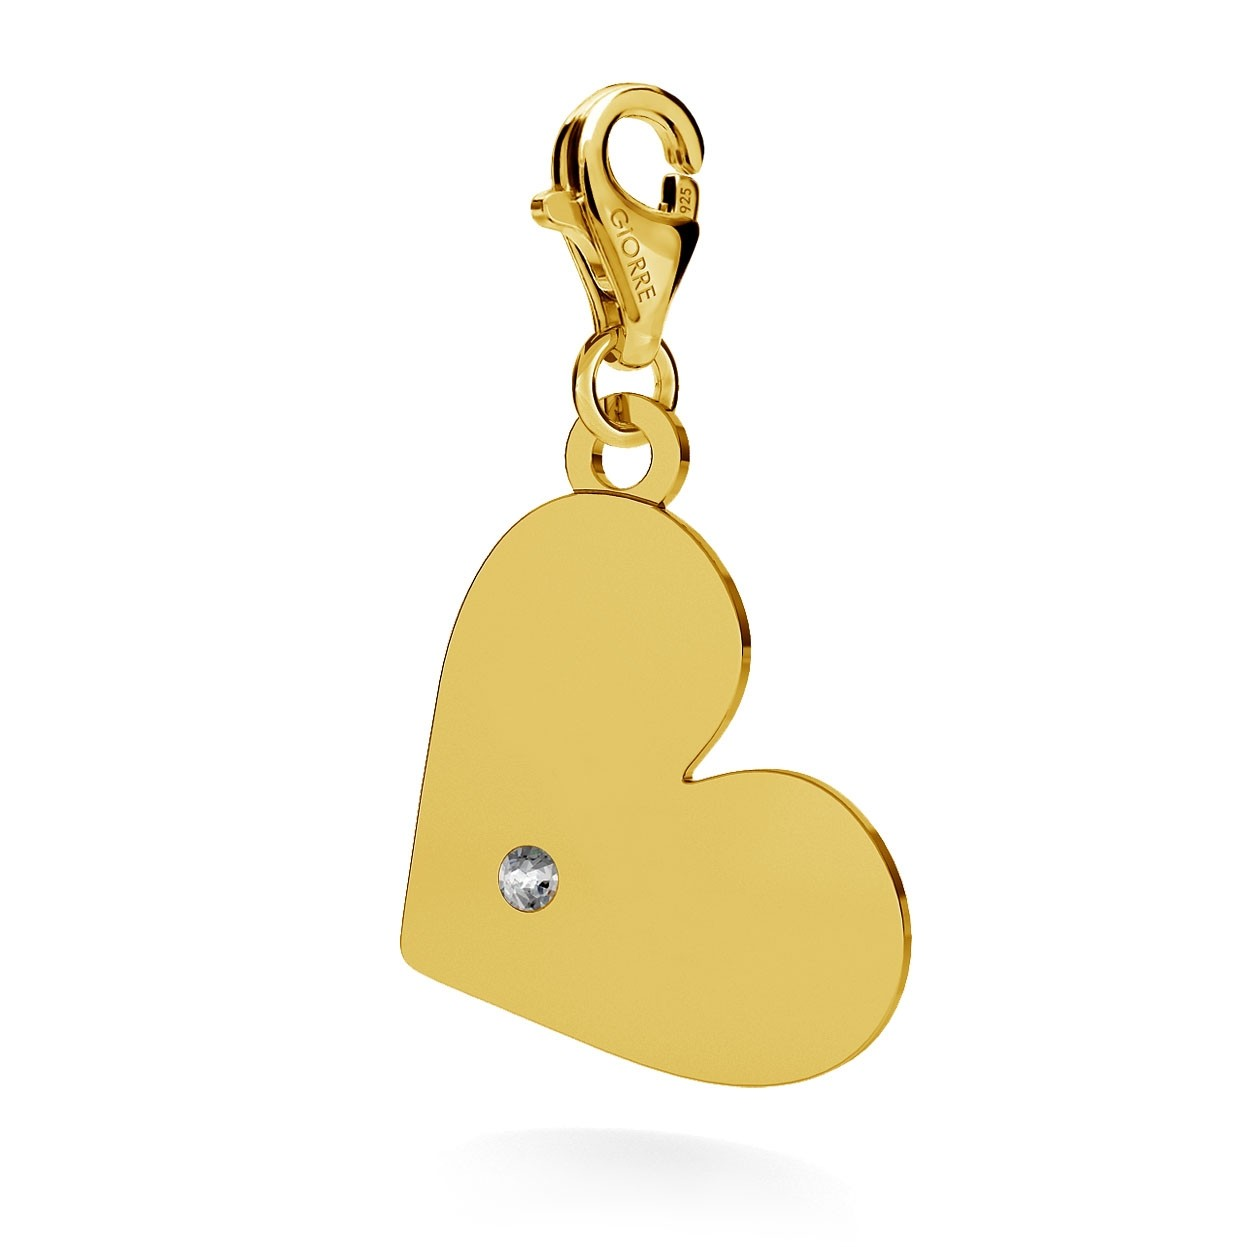 CHARM 101, HEART WITH ENGRAVE, SWAROVSKI 2038 SS 6, STERLING SILVER (925) RHODIUM OR GOLD PLATED